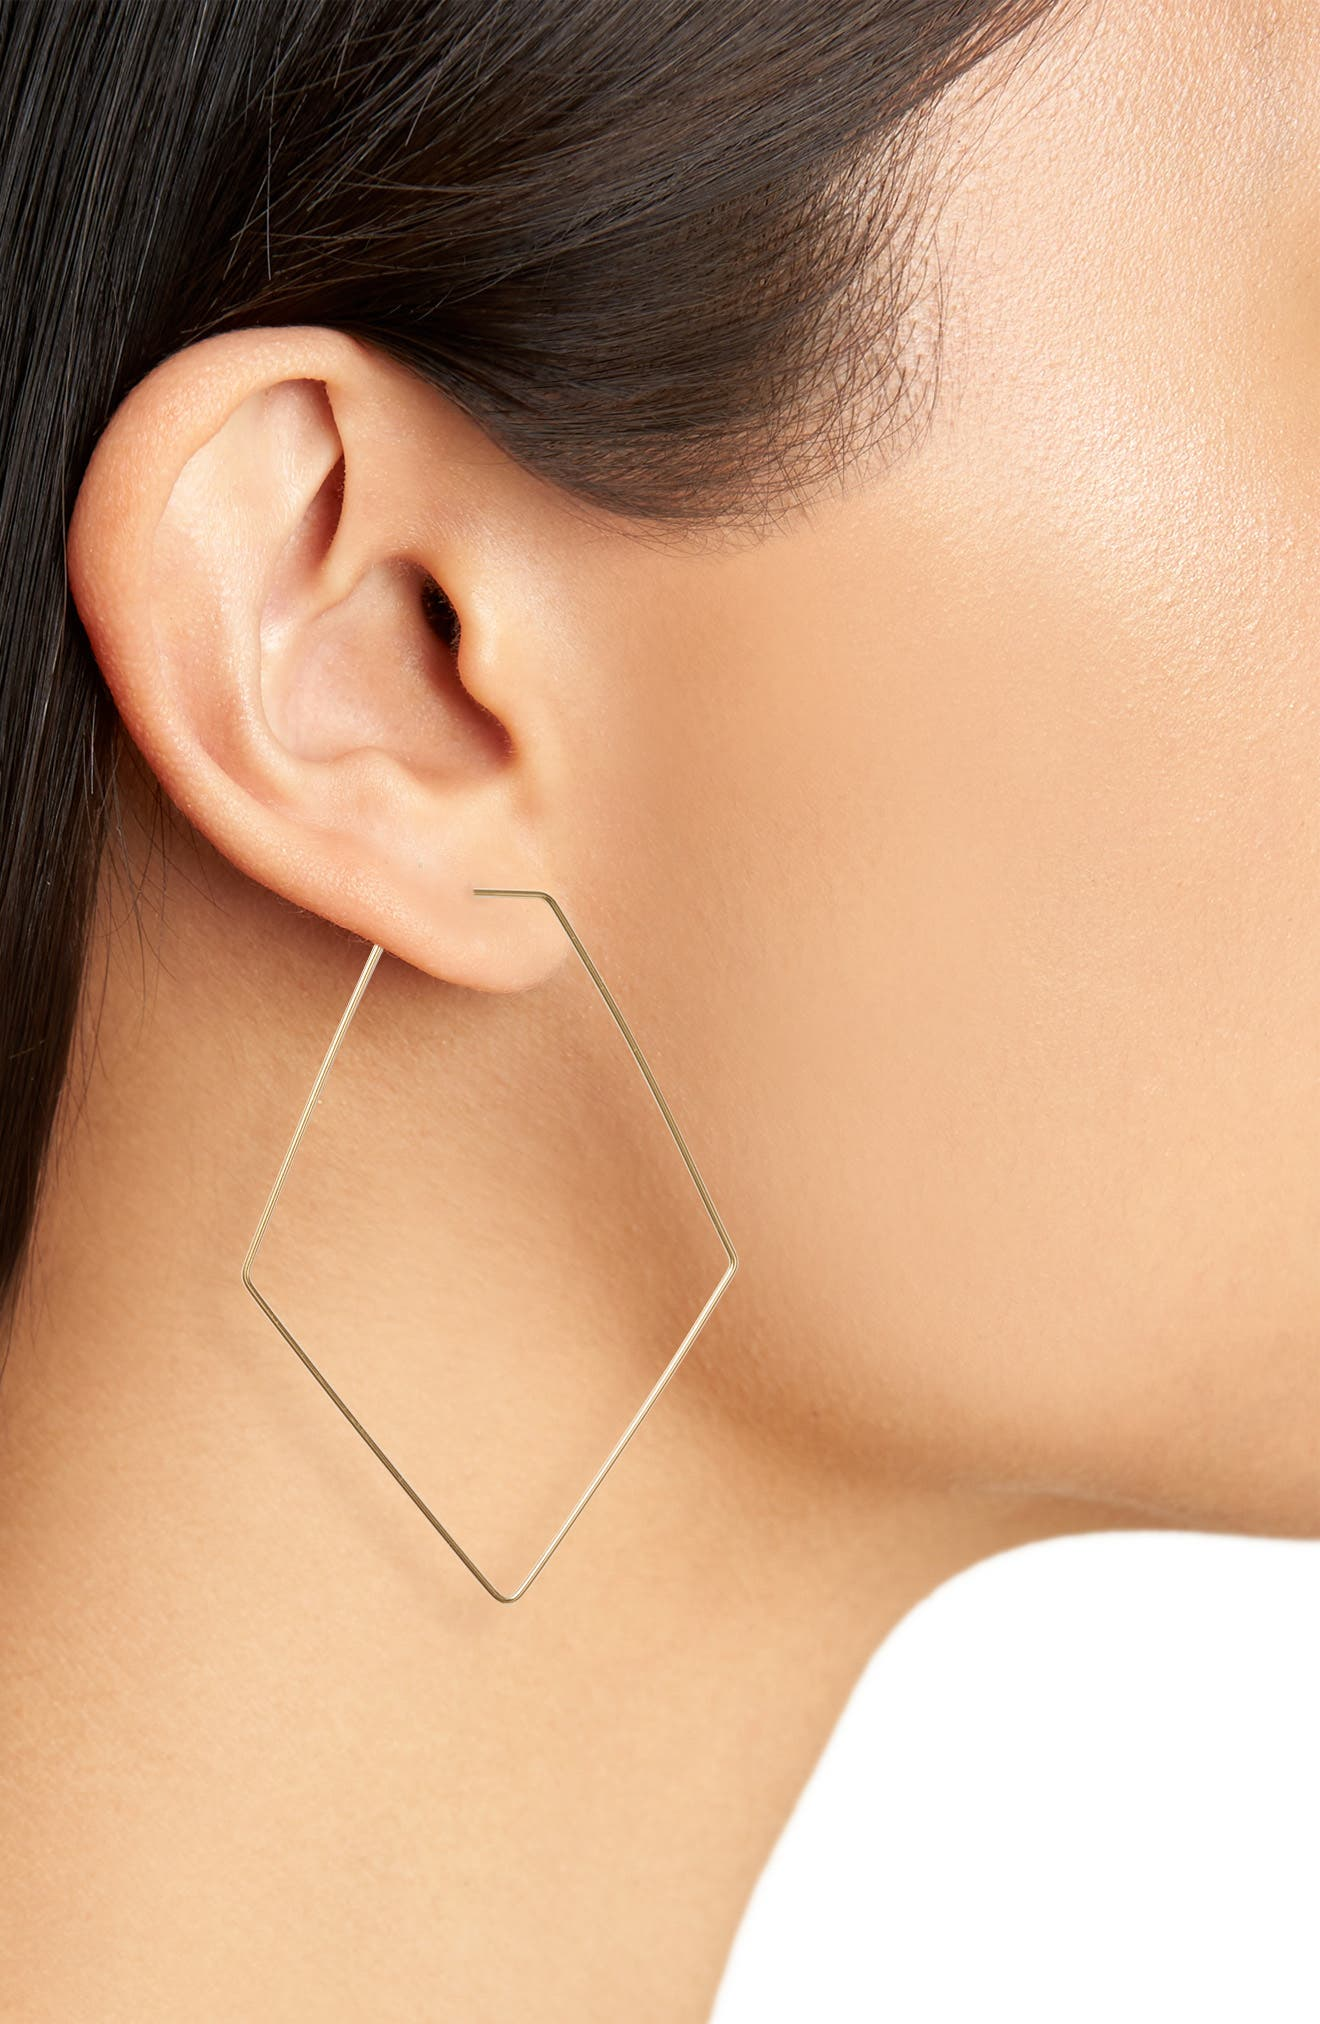 Rhombus Hoop Earrings,                             Alternate thumbnail 2, color,                             GOLD